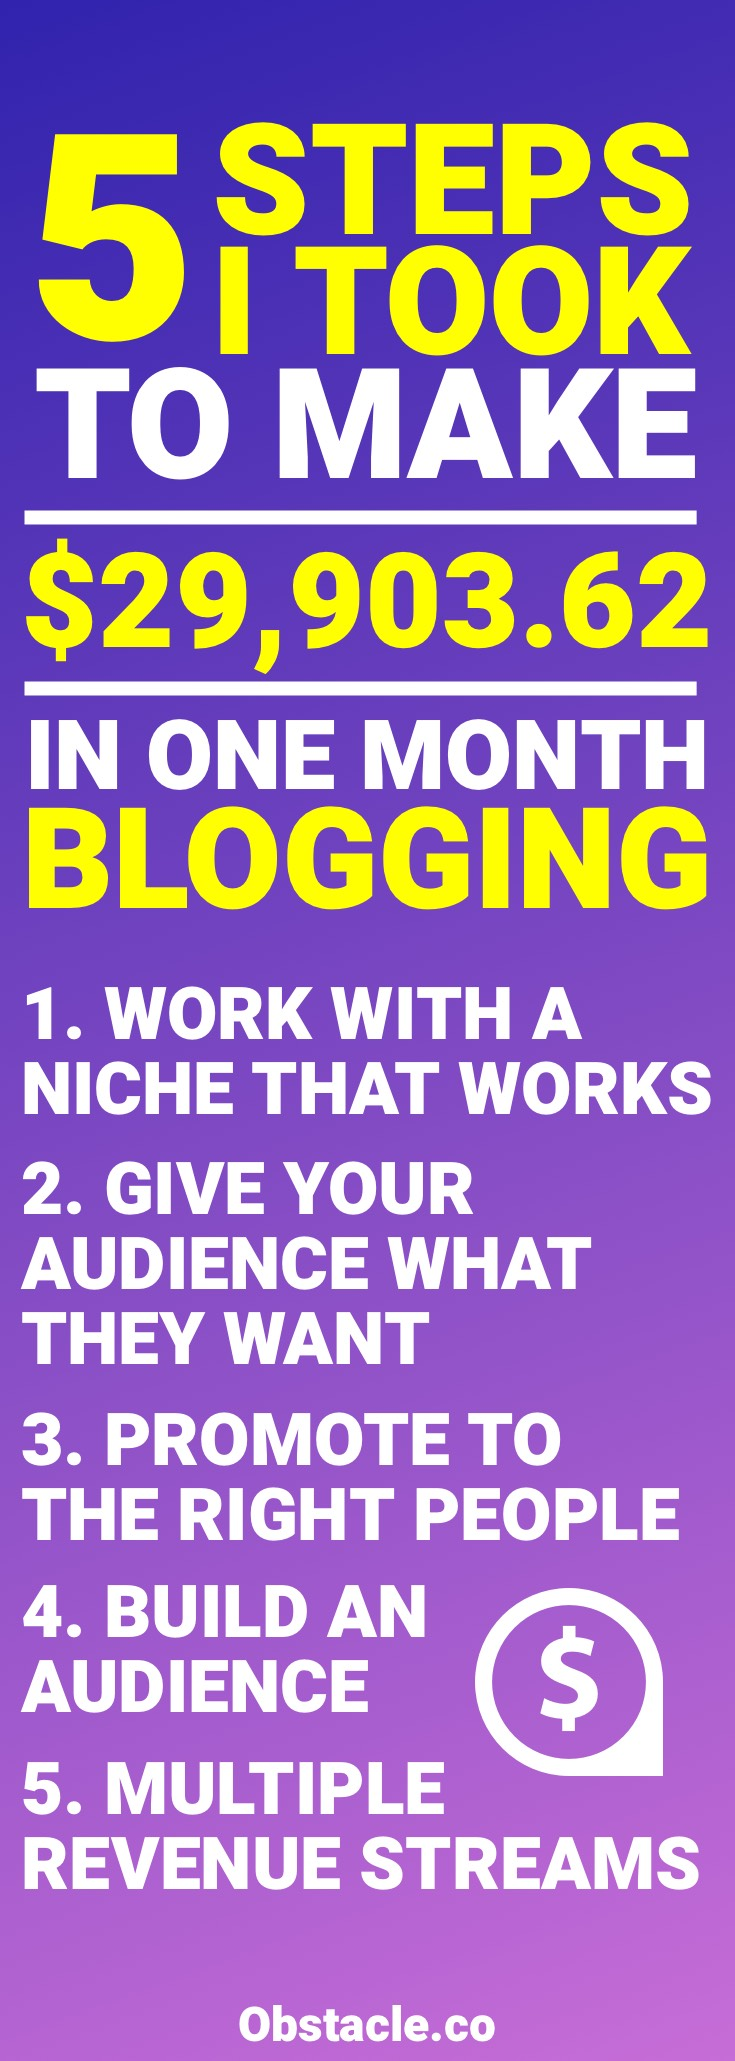 The 5 Steps I Took to Make $29,903.62 in a Month with Blogging